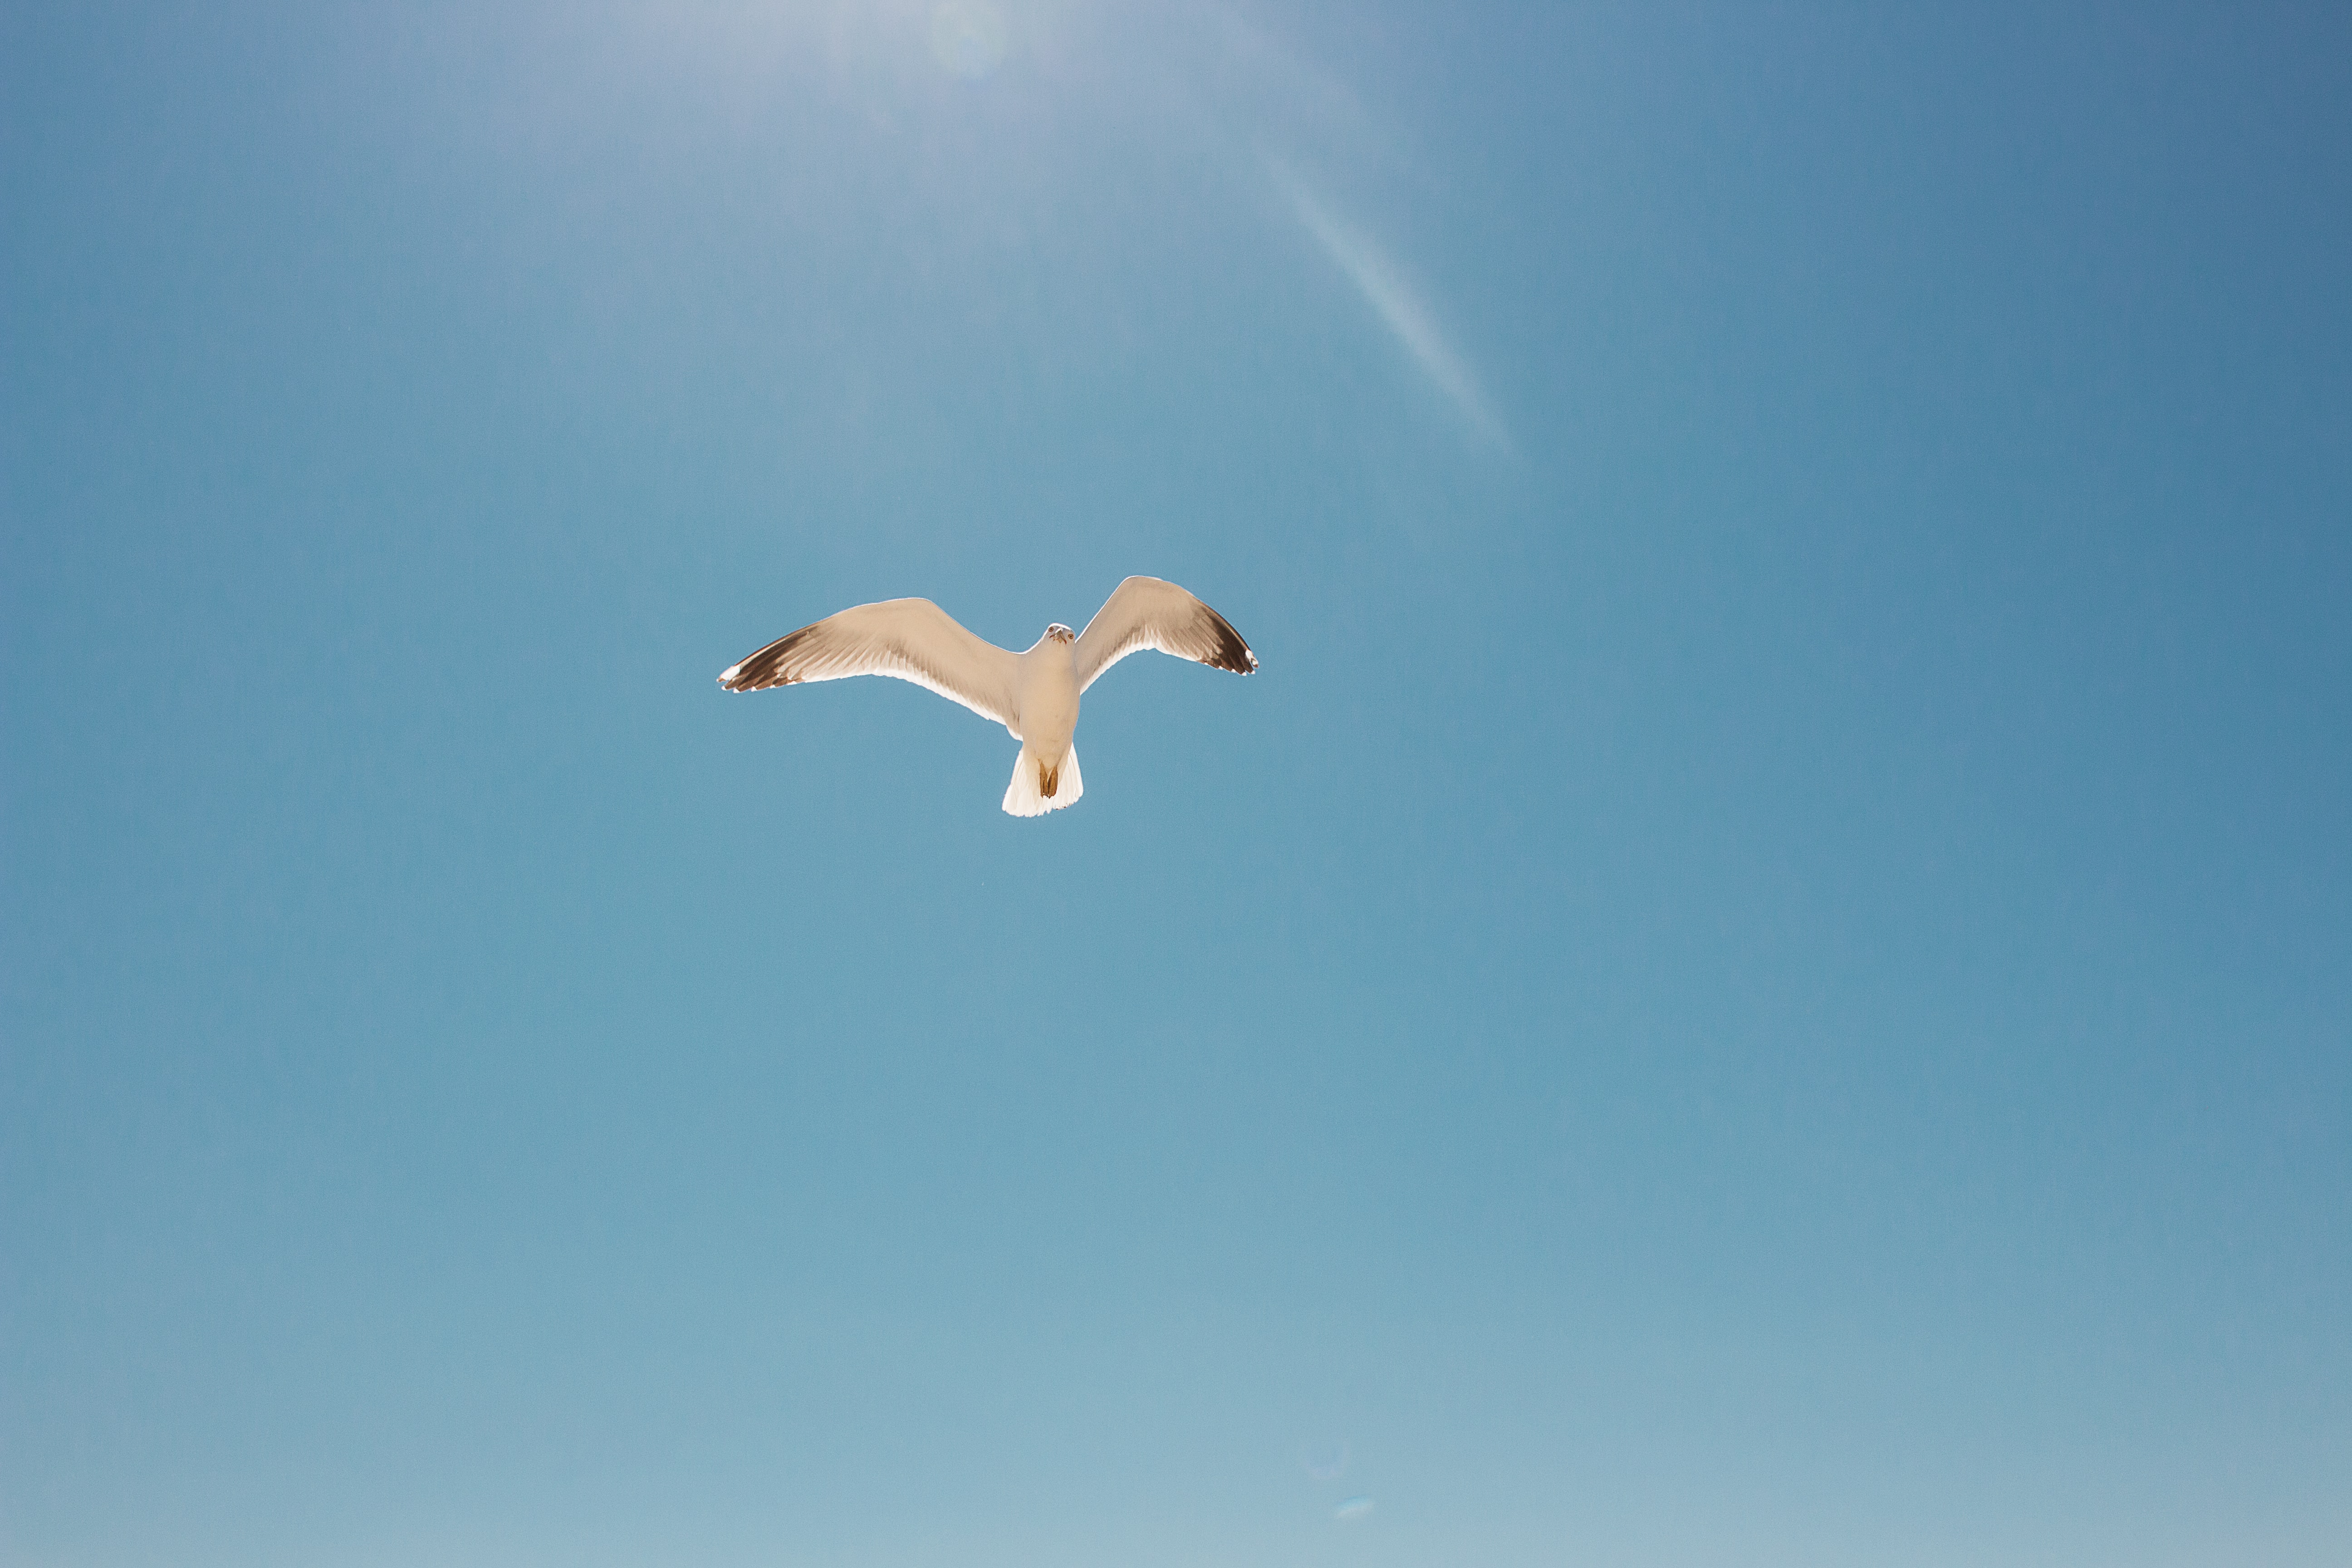 white and black seagull flying in the skies